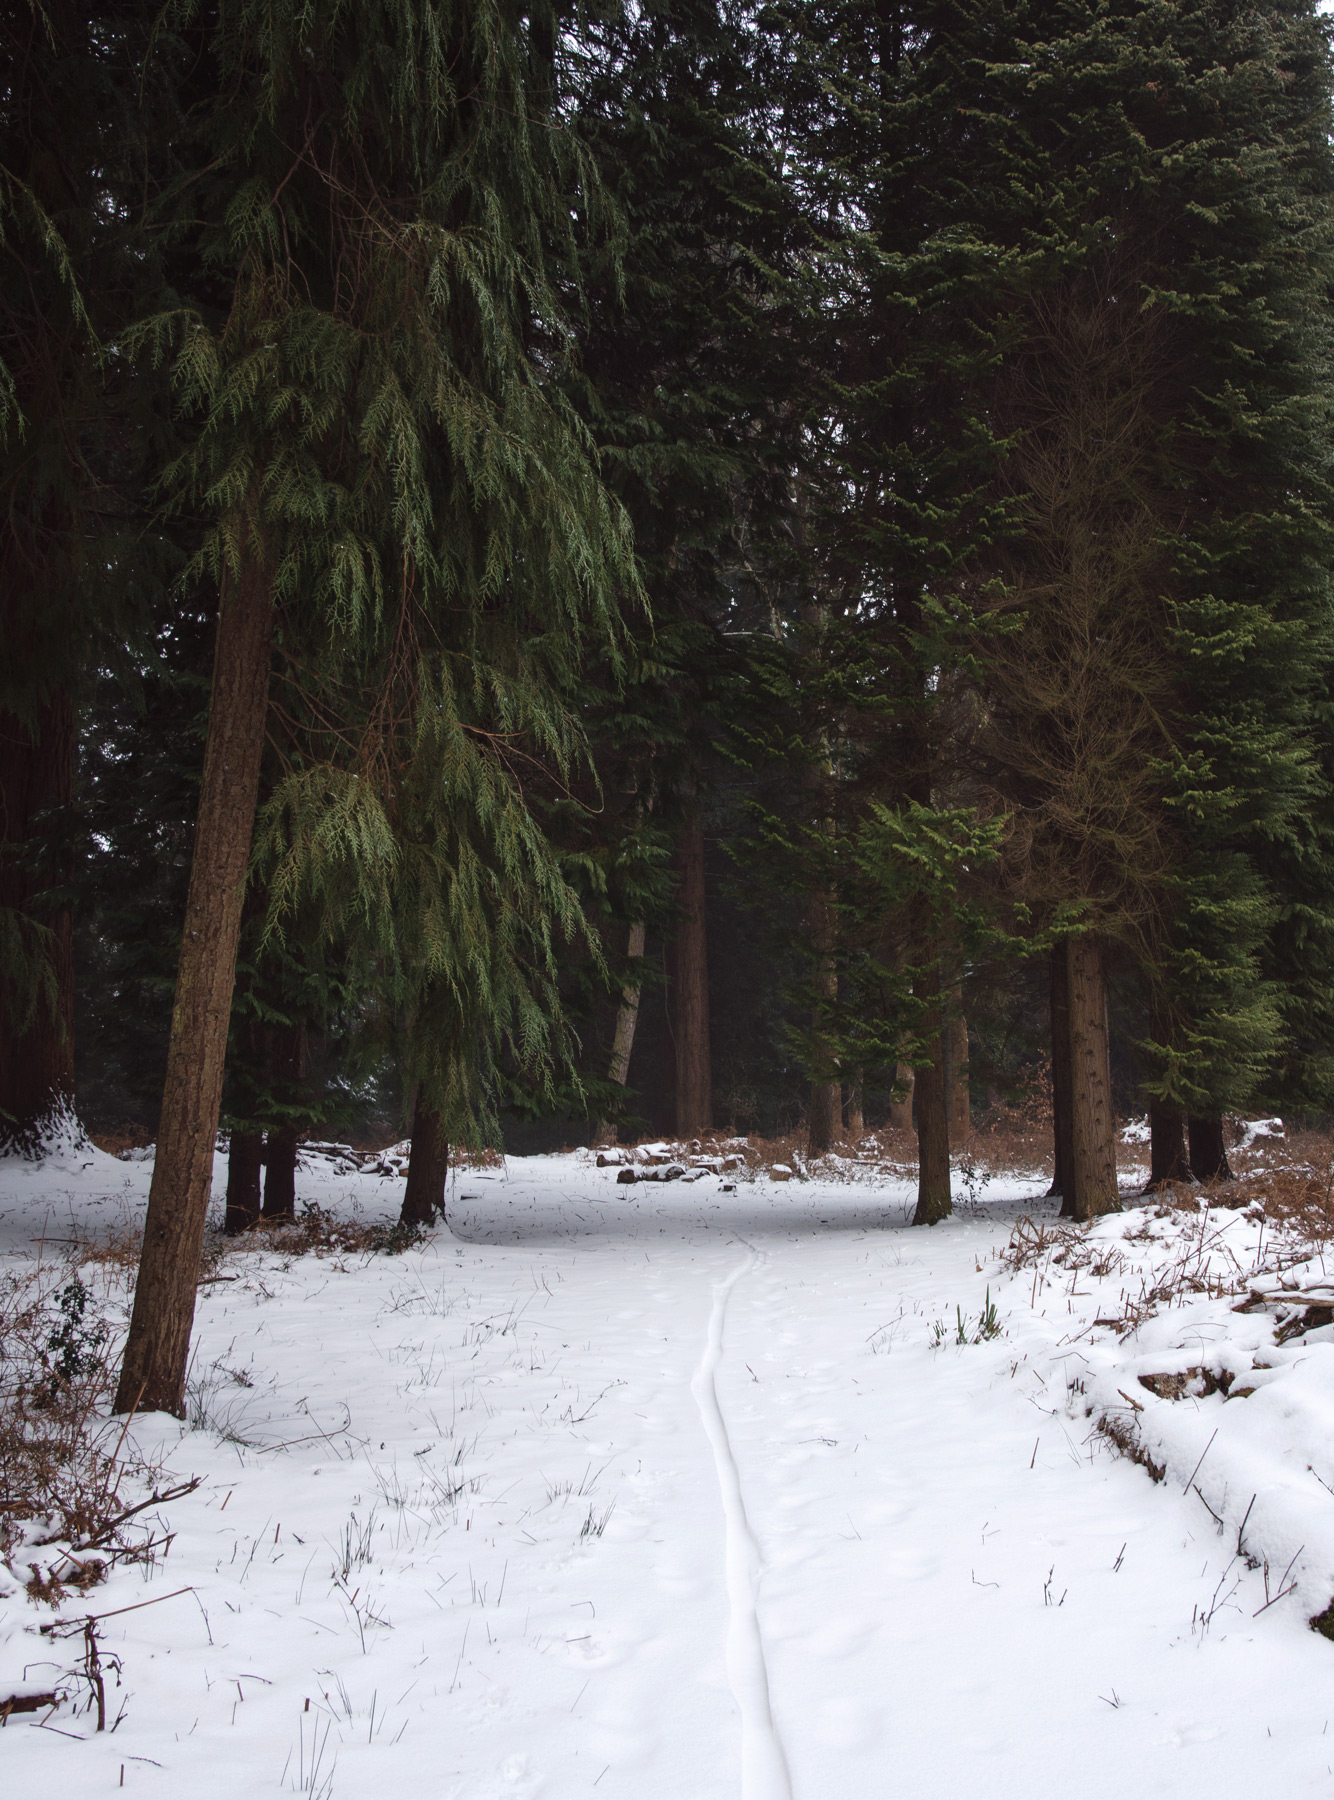 Snowy path into trees